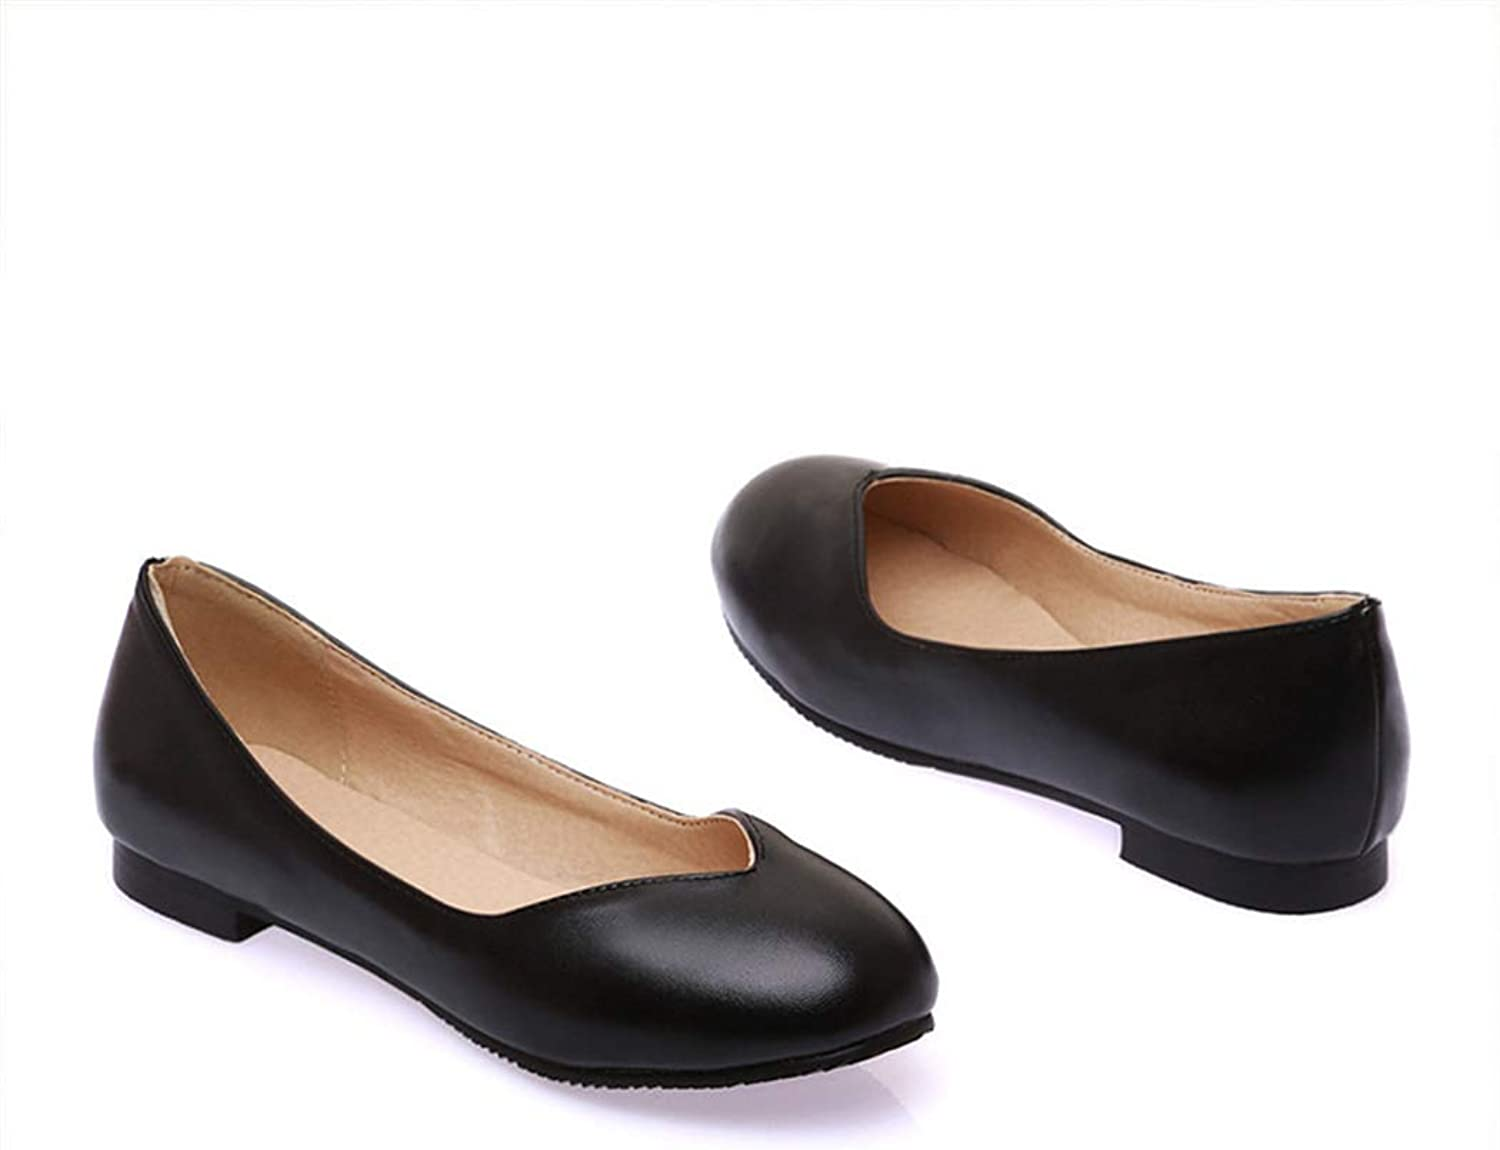 NingYu Loafers Girl Ballet Flats Women Flat shoes Soft Comfortable shoes